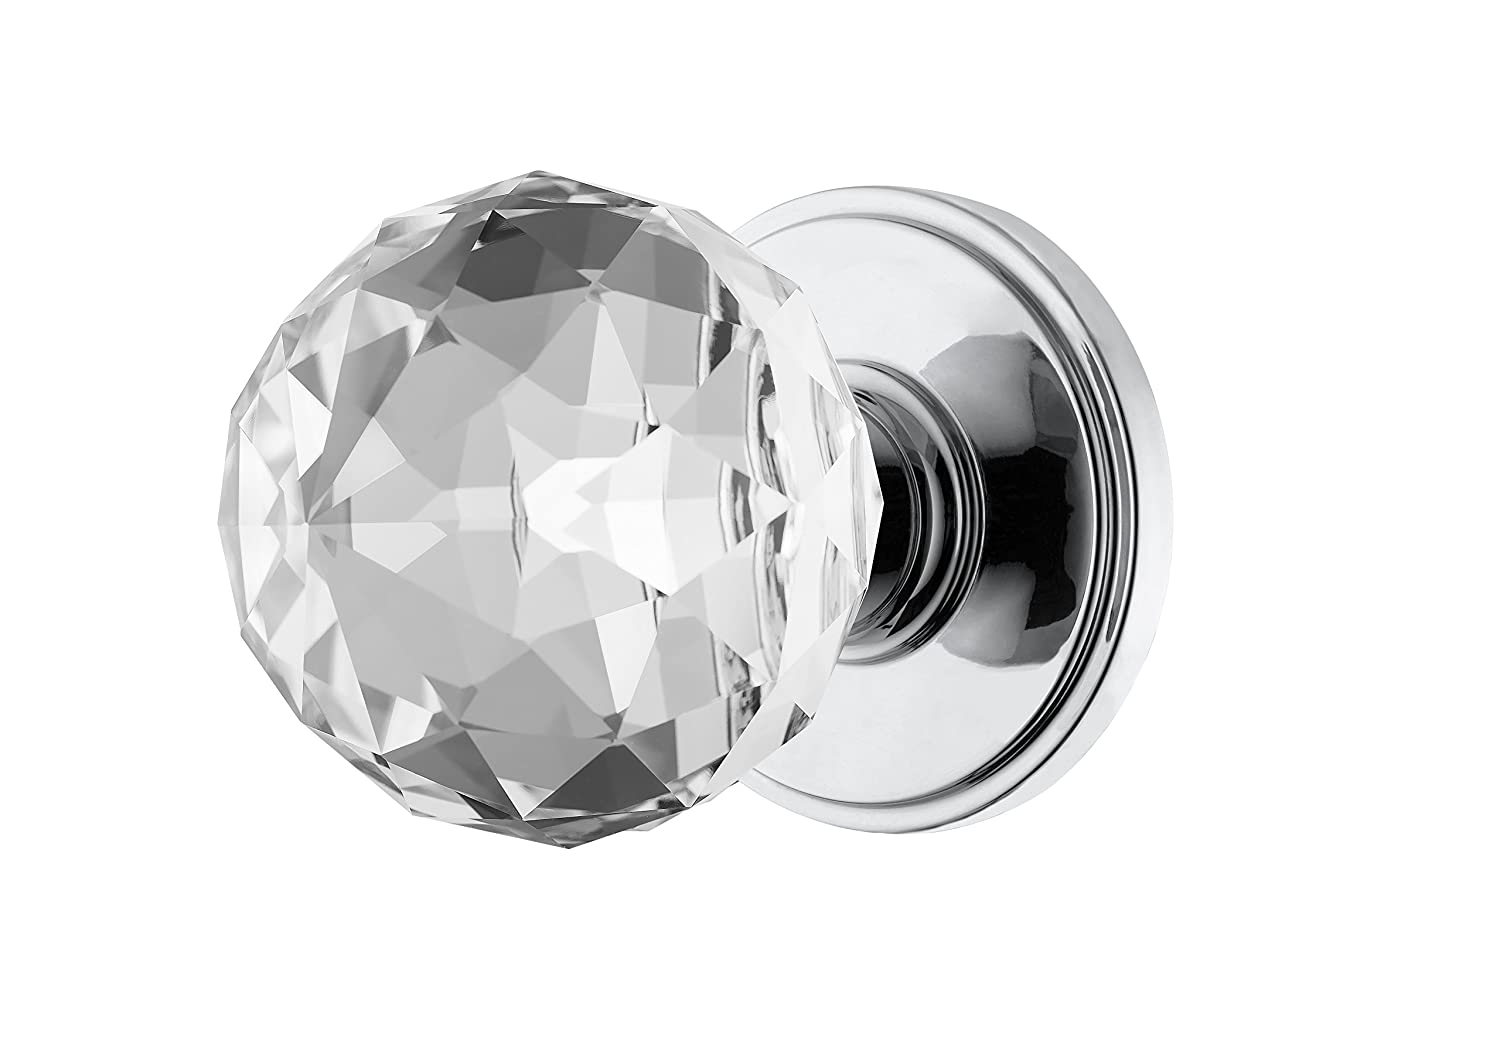 Decor Living, AMG and Enchante Accessories Faceted Crystal Door Knobs, Passage Function for Hall and Closet, IRIS Collection, DK04C POC, Polished Chrome